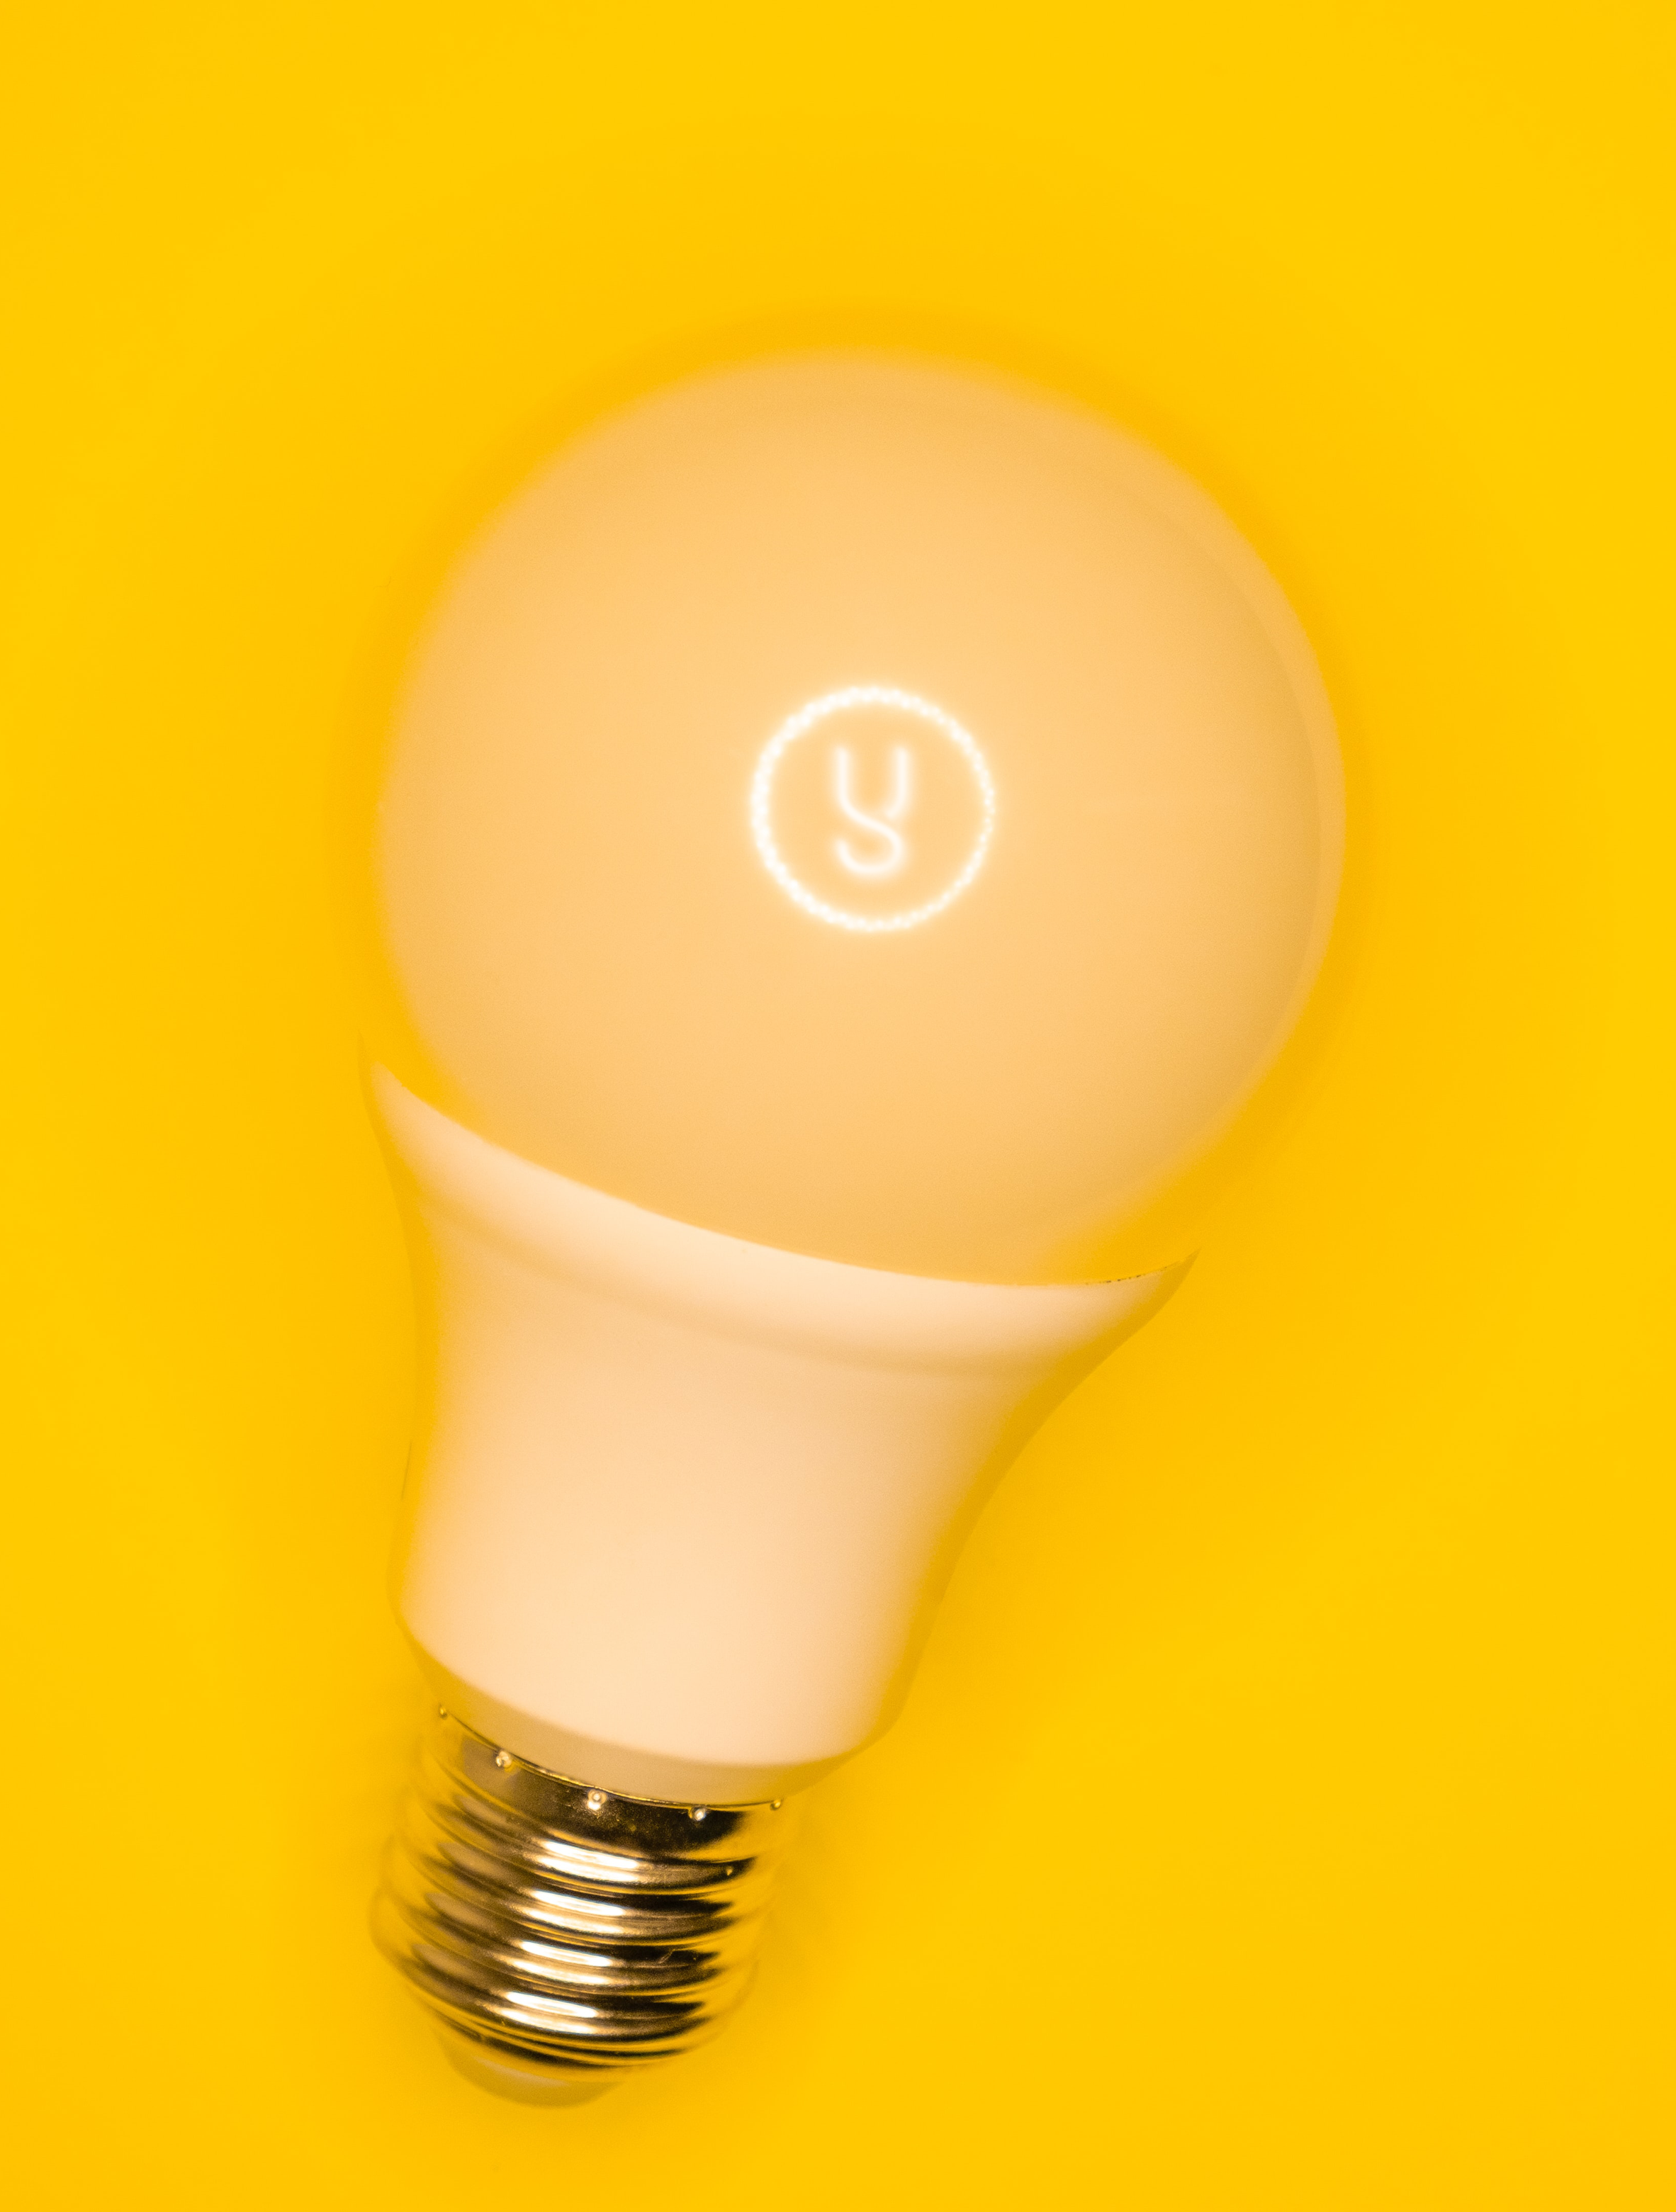 An image of a light bulb with an illuminated letter 'Y' in the middle of the light bulb, against a yellow background.